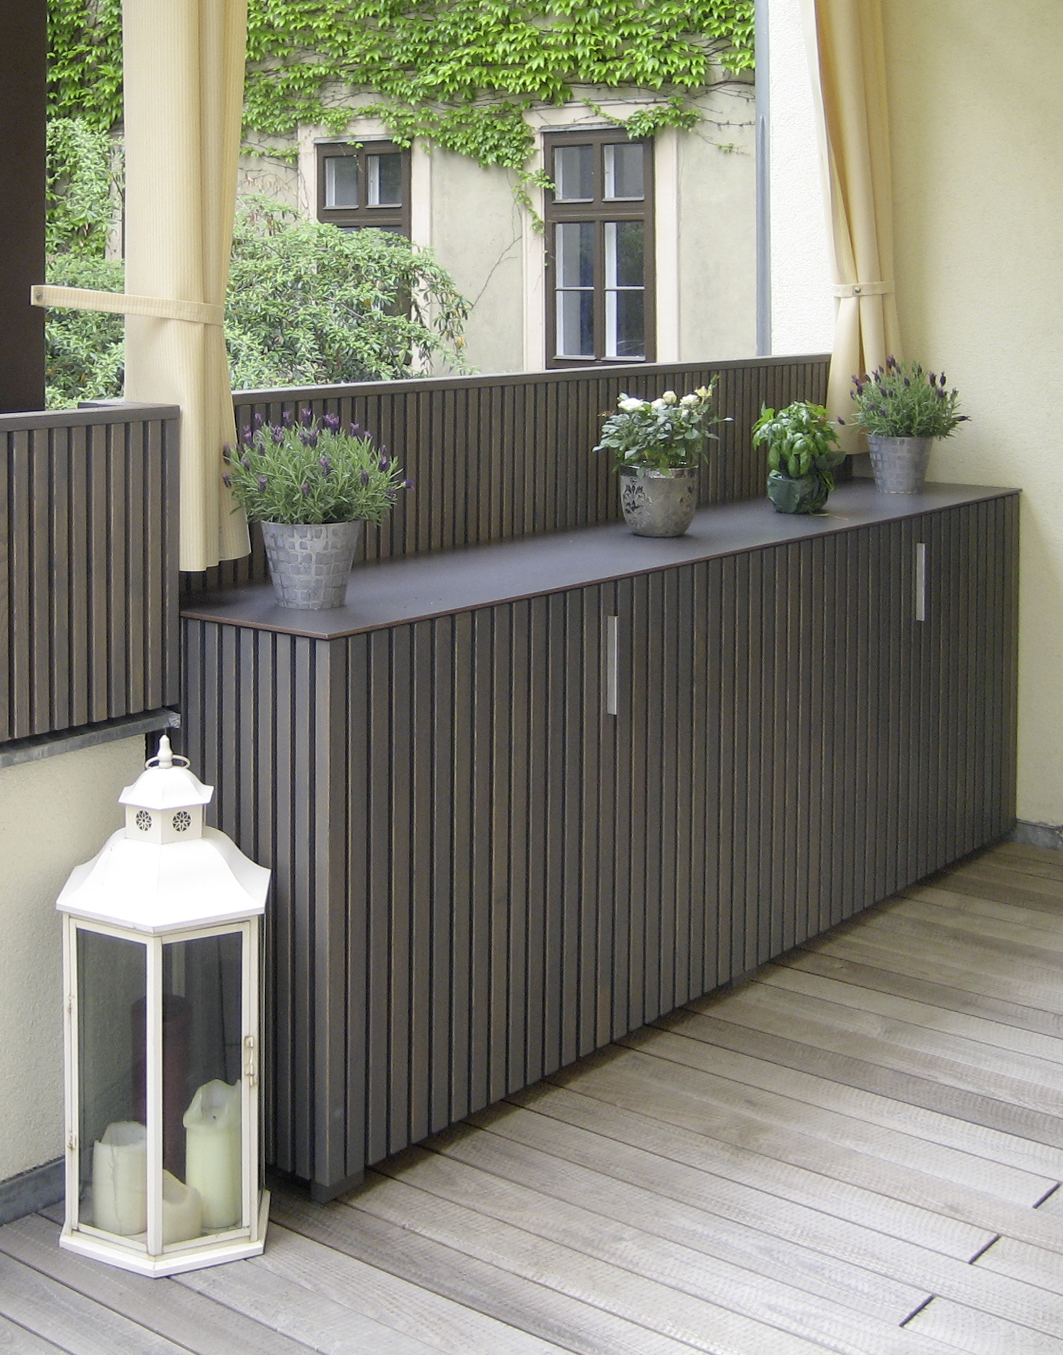 garten sideboard gartentruhen aus holz walli wohnraum garten. Black Bedroom Furniture Sets. Home Design Ideas